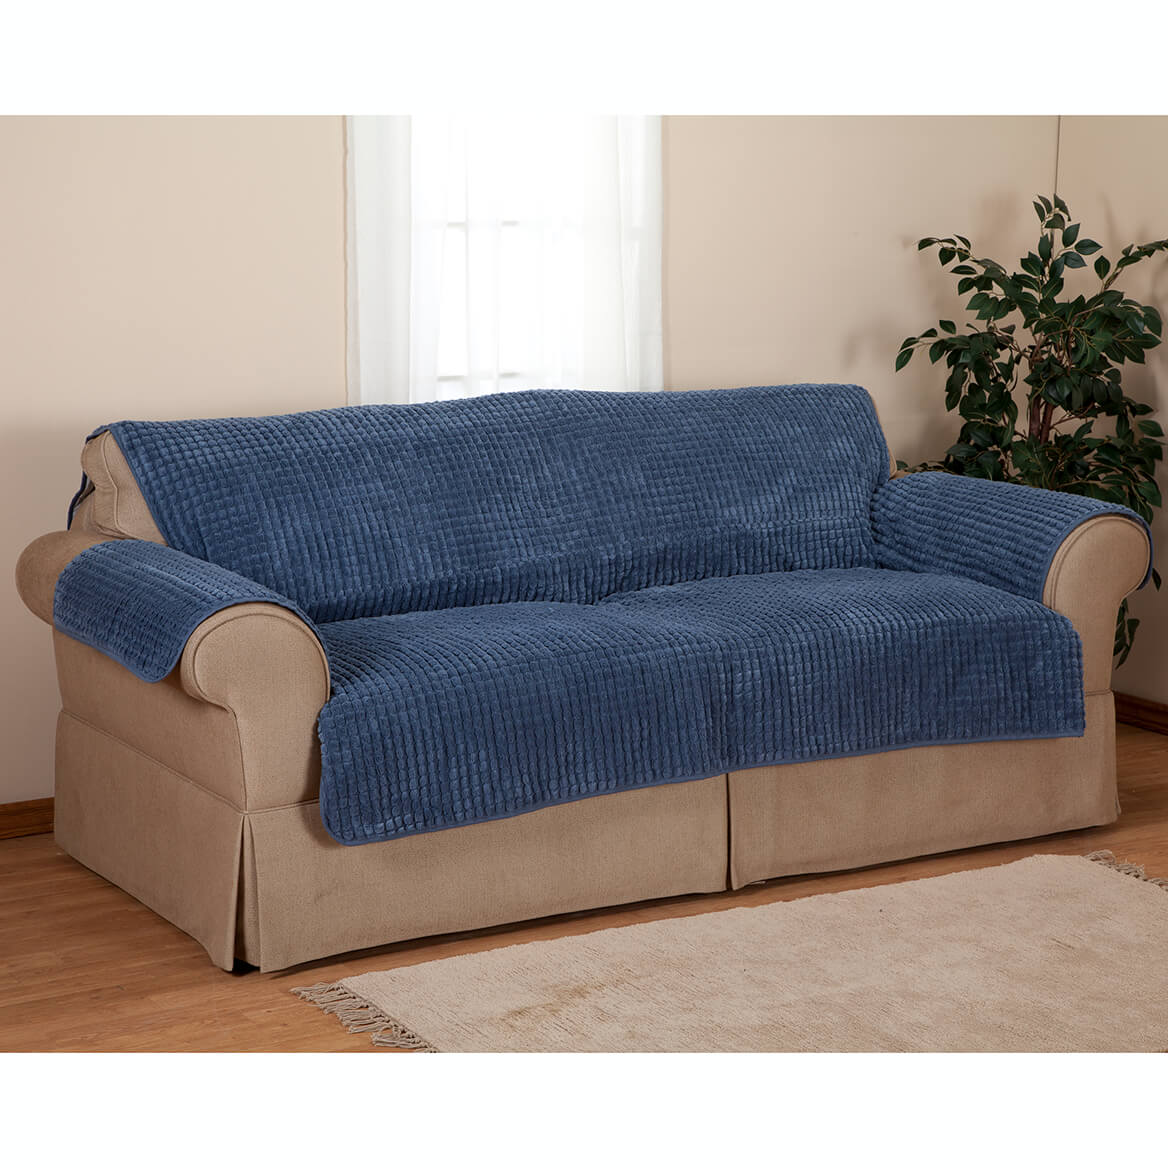 Puff Sofa Furniture Protector-349611